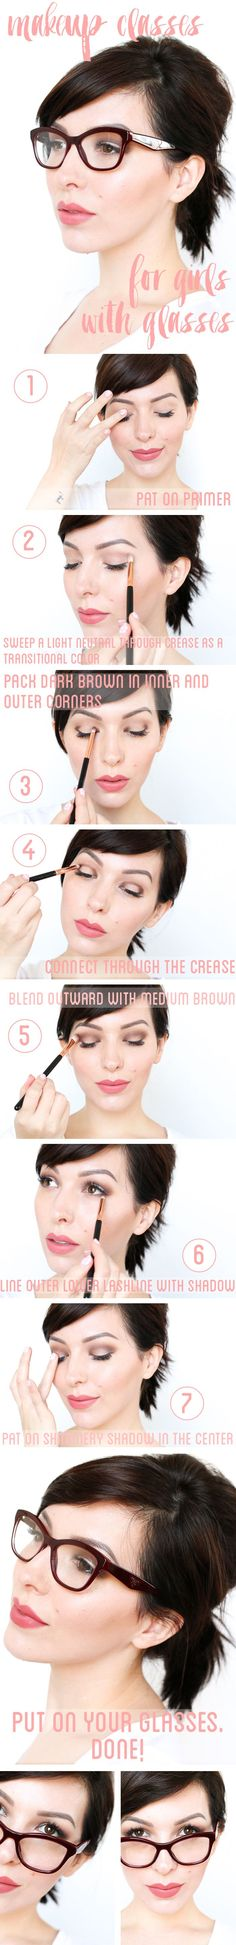 Makeup Tutorial For Girls With Glasses https://fr.pinterest.com/disavoie11/